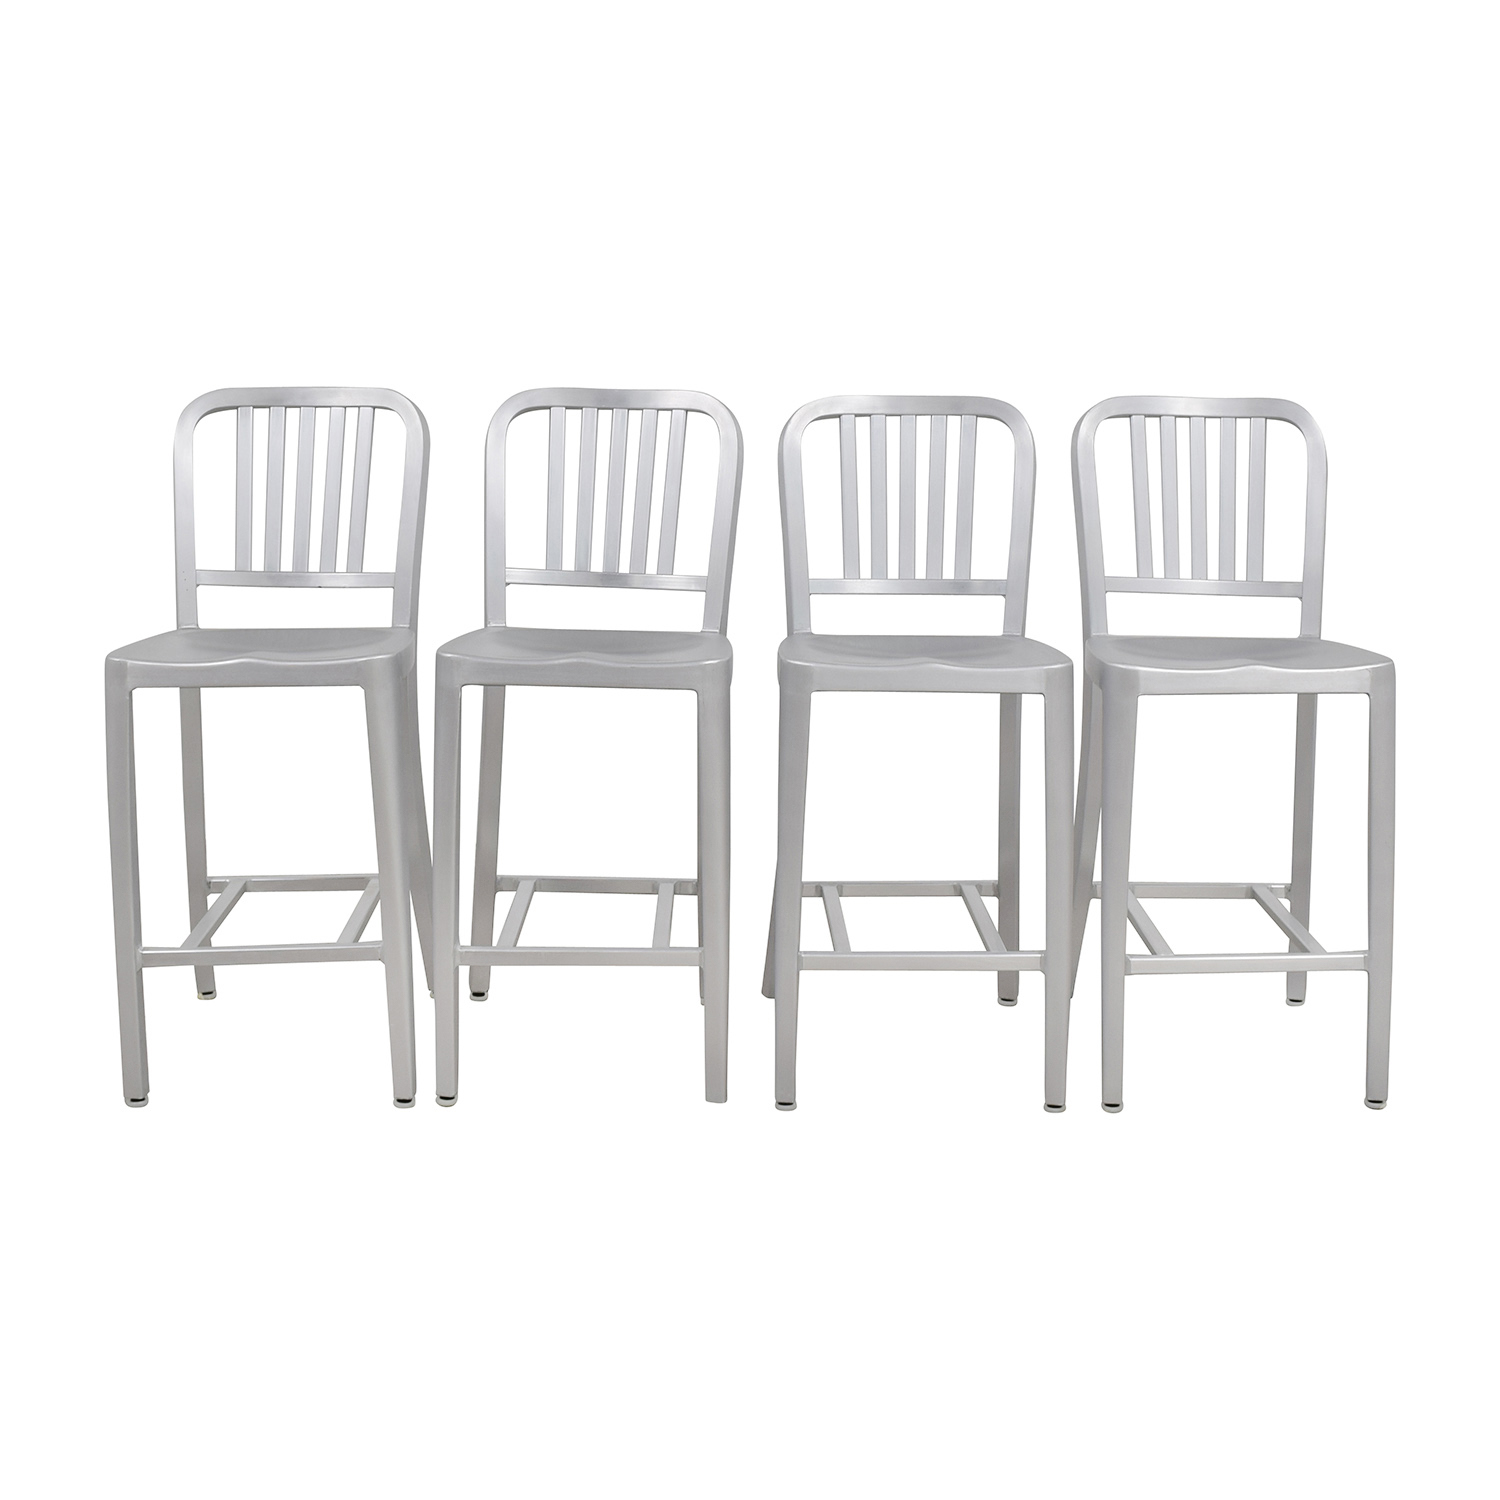 InMod InMod Aluminum Counter Stools Stools